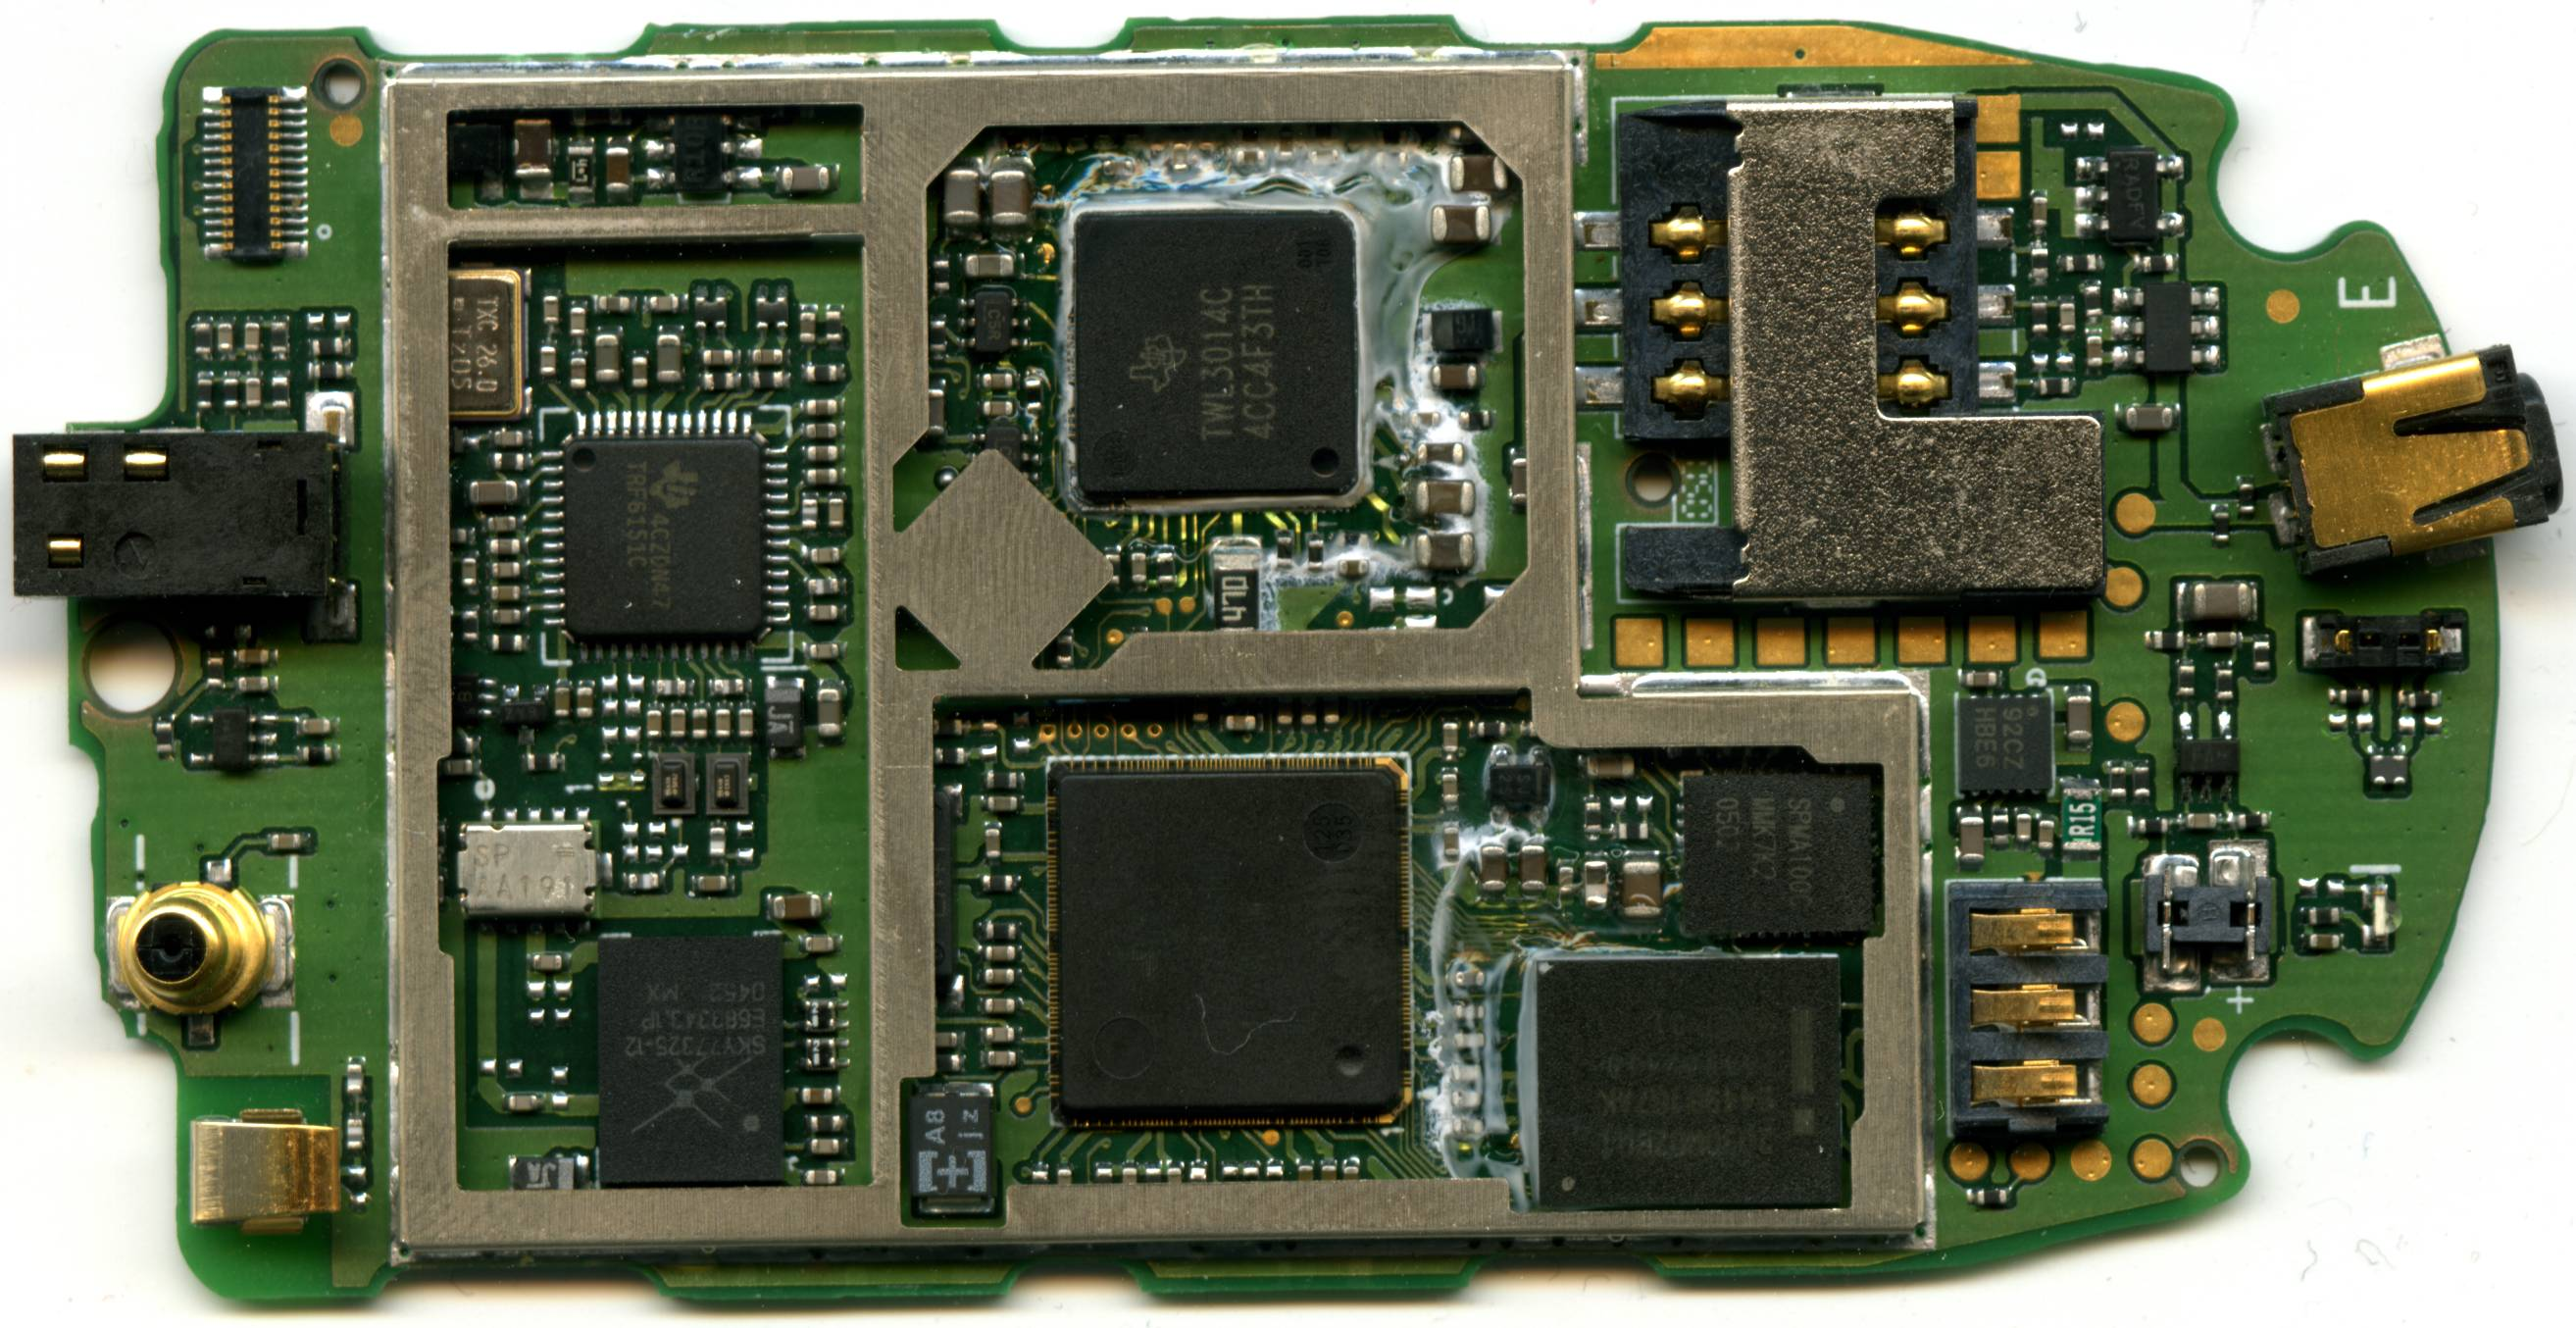 PCB scan of the Motorola V171